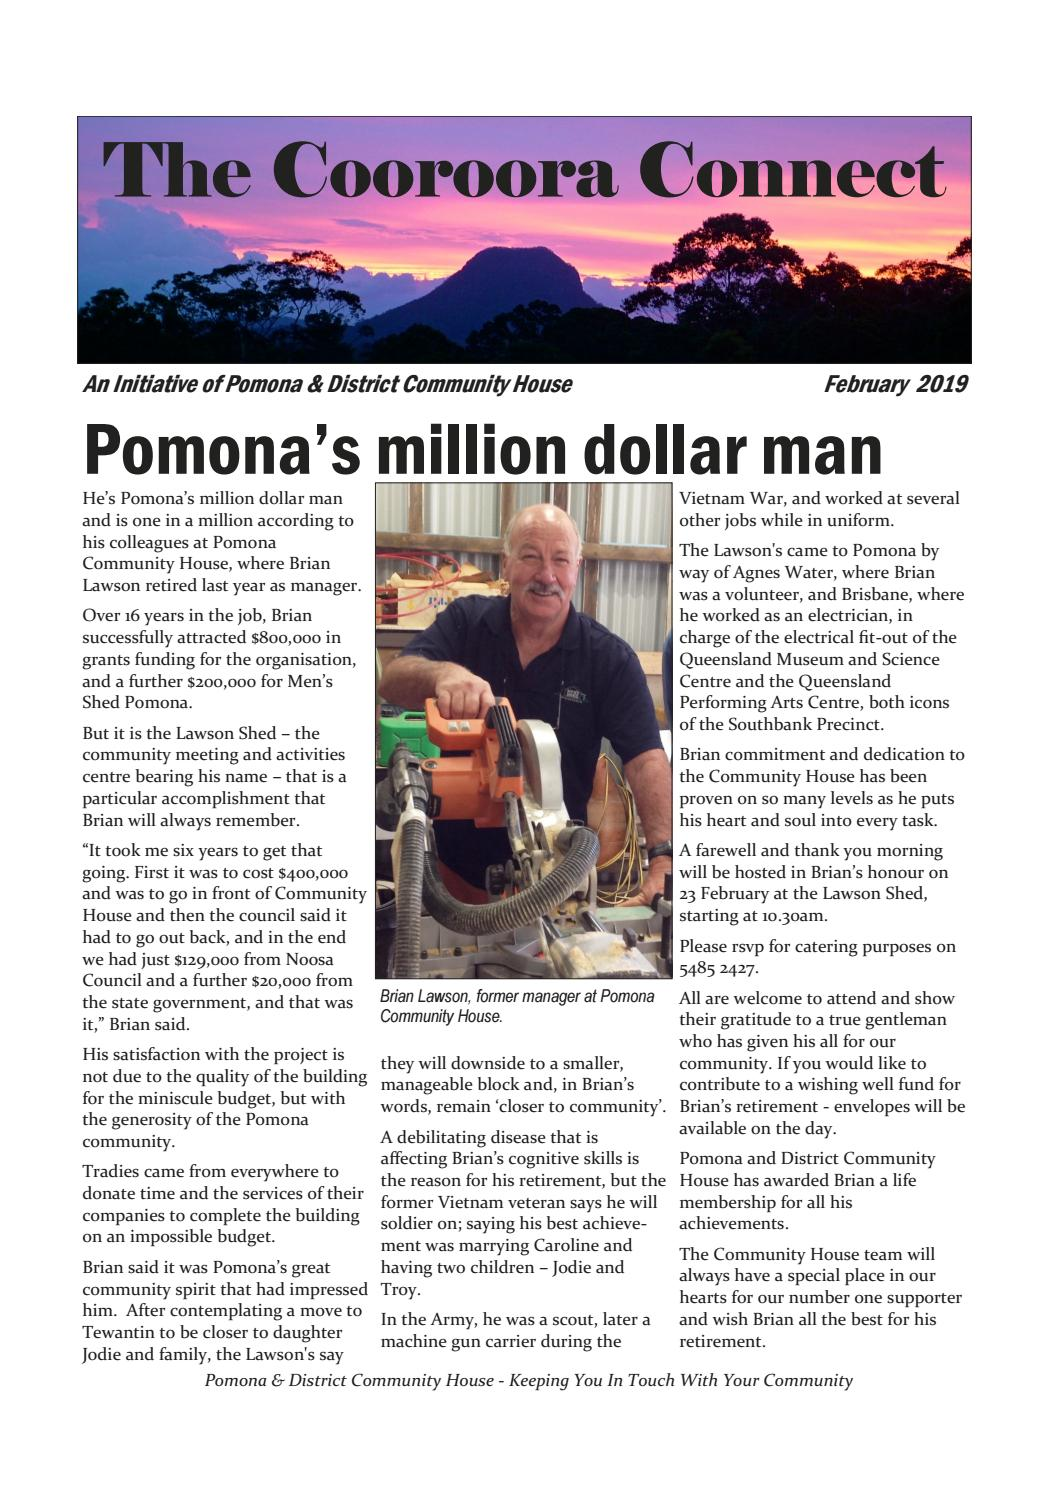 Cooroora Connect February 2019 by Heather Manders - issuu